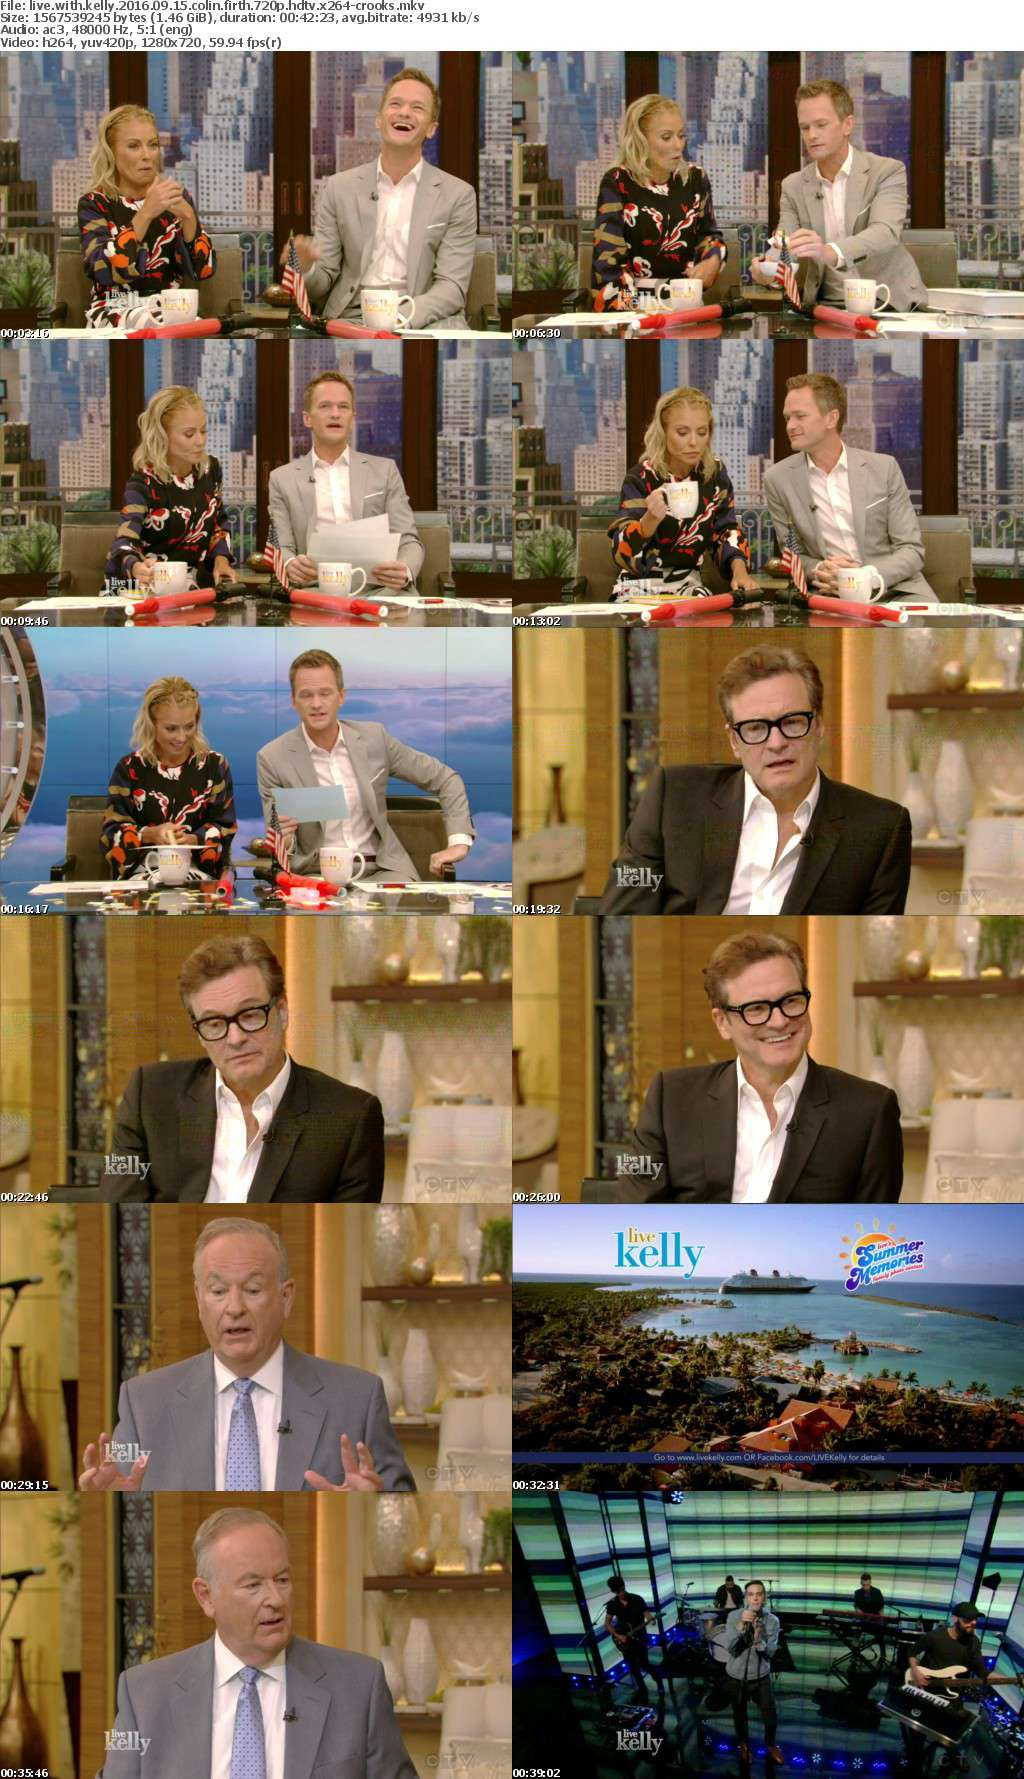 LIVE with Kelly 2016 09 15 Colin Firth 720p HDTV x264-CROOKS